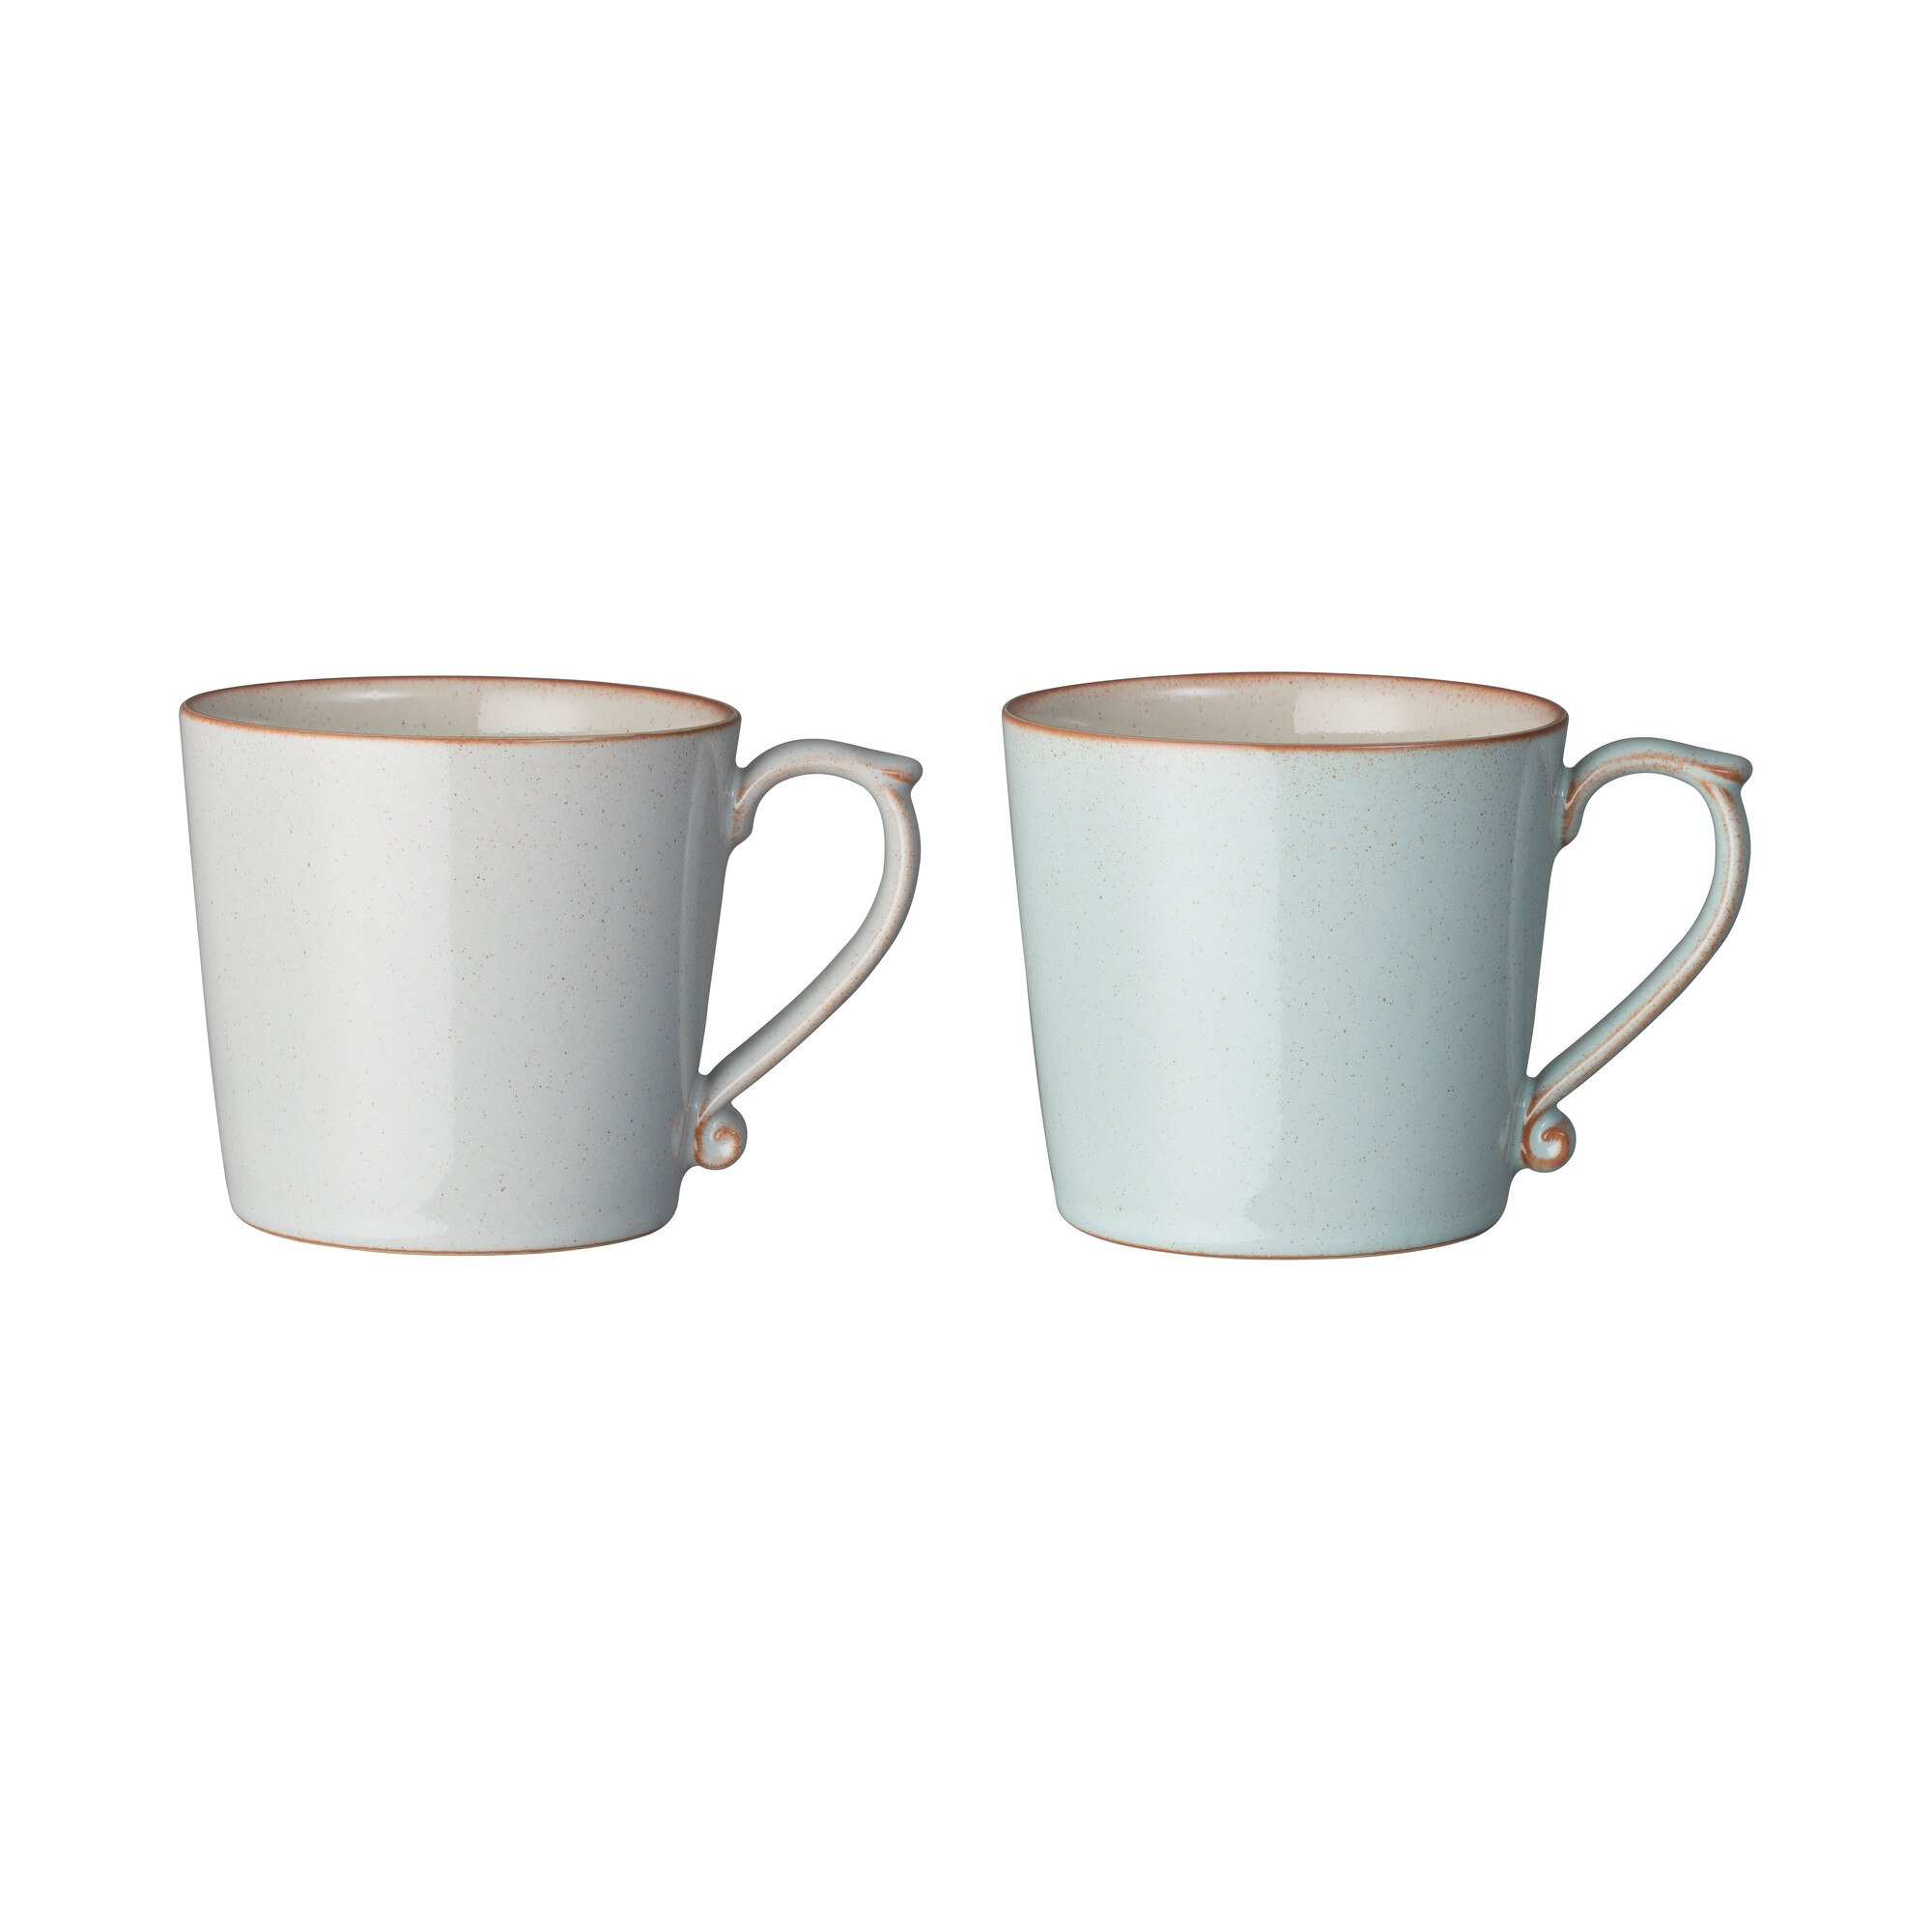 Compare prices for Denby Always Entertaining - The Blue Edit 2 Piece Mug Set Light